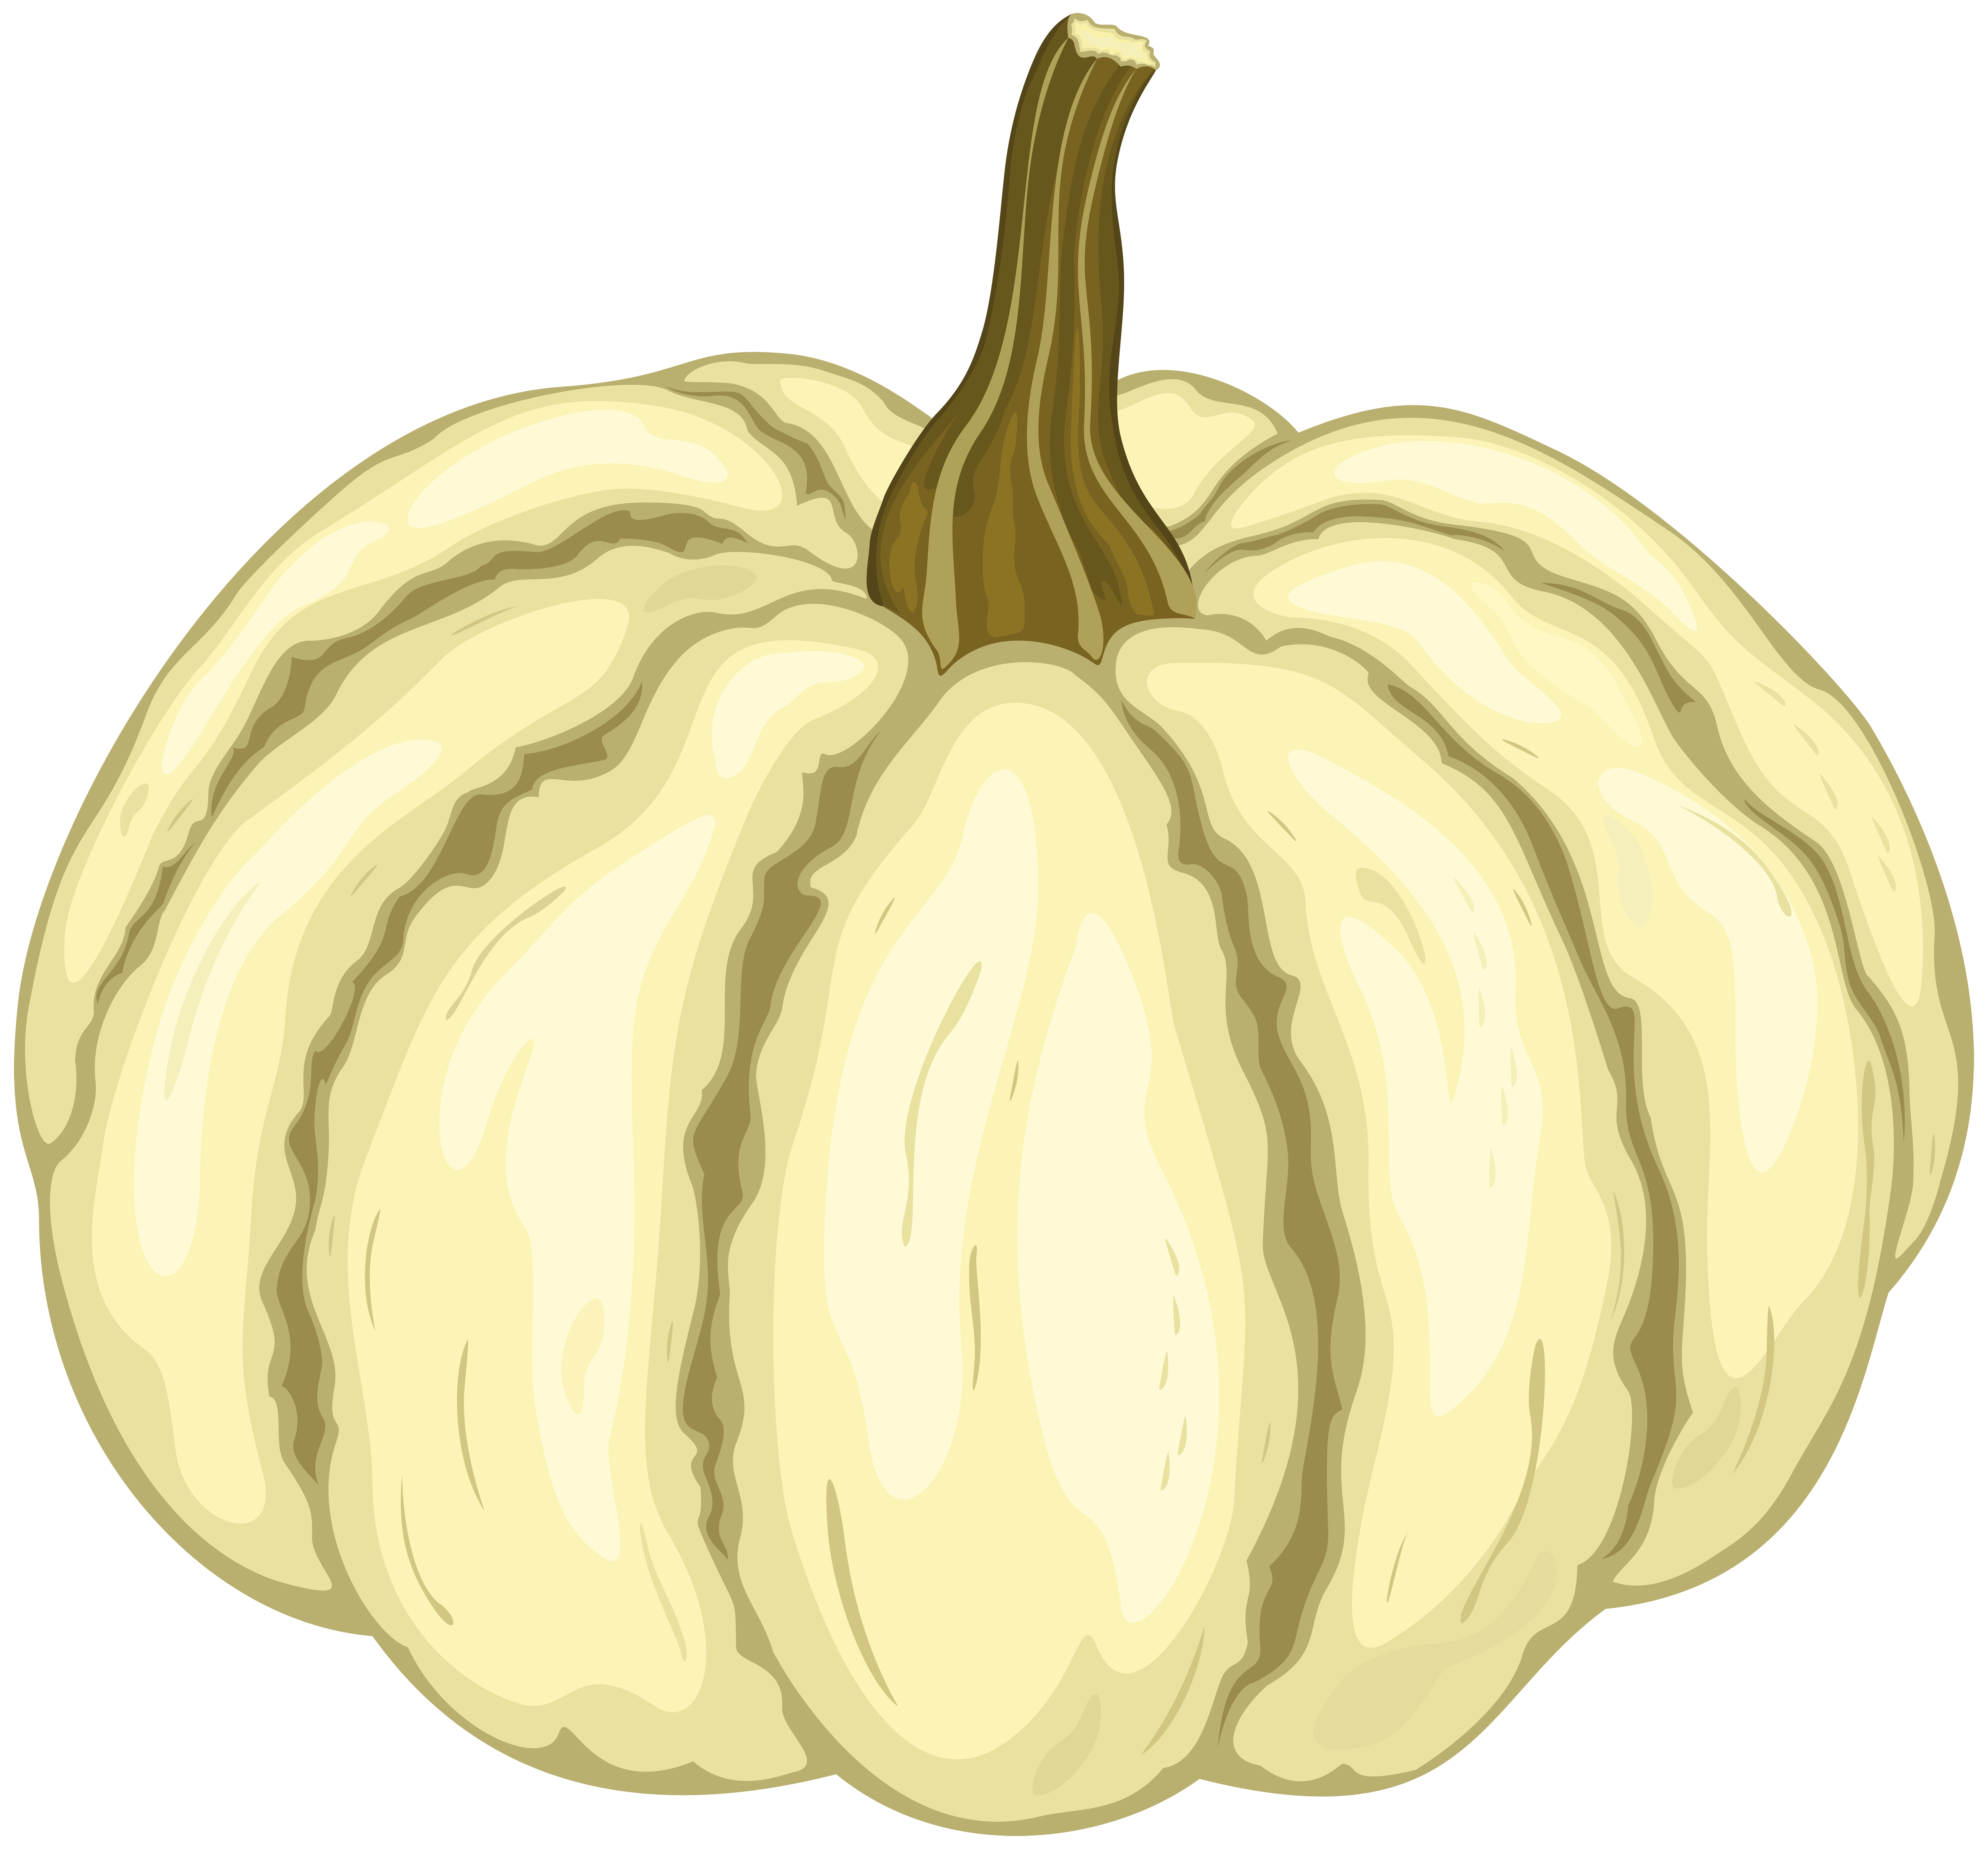 White Pumpkin PNG Clipart Image.